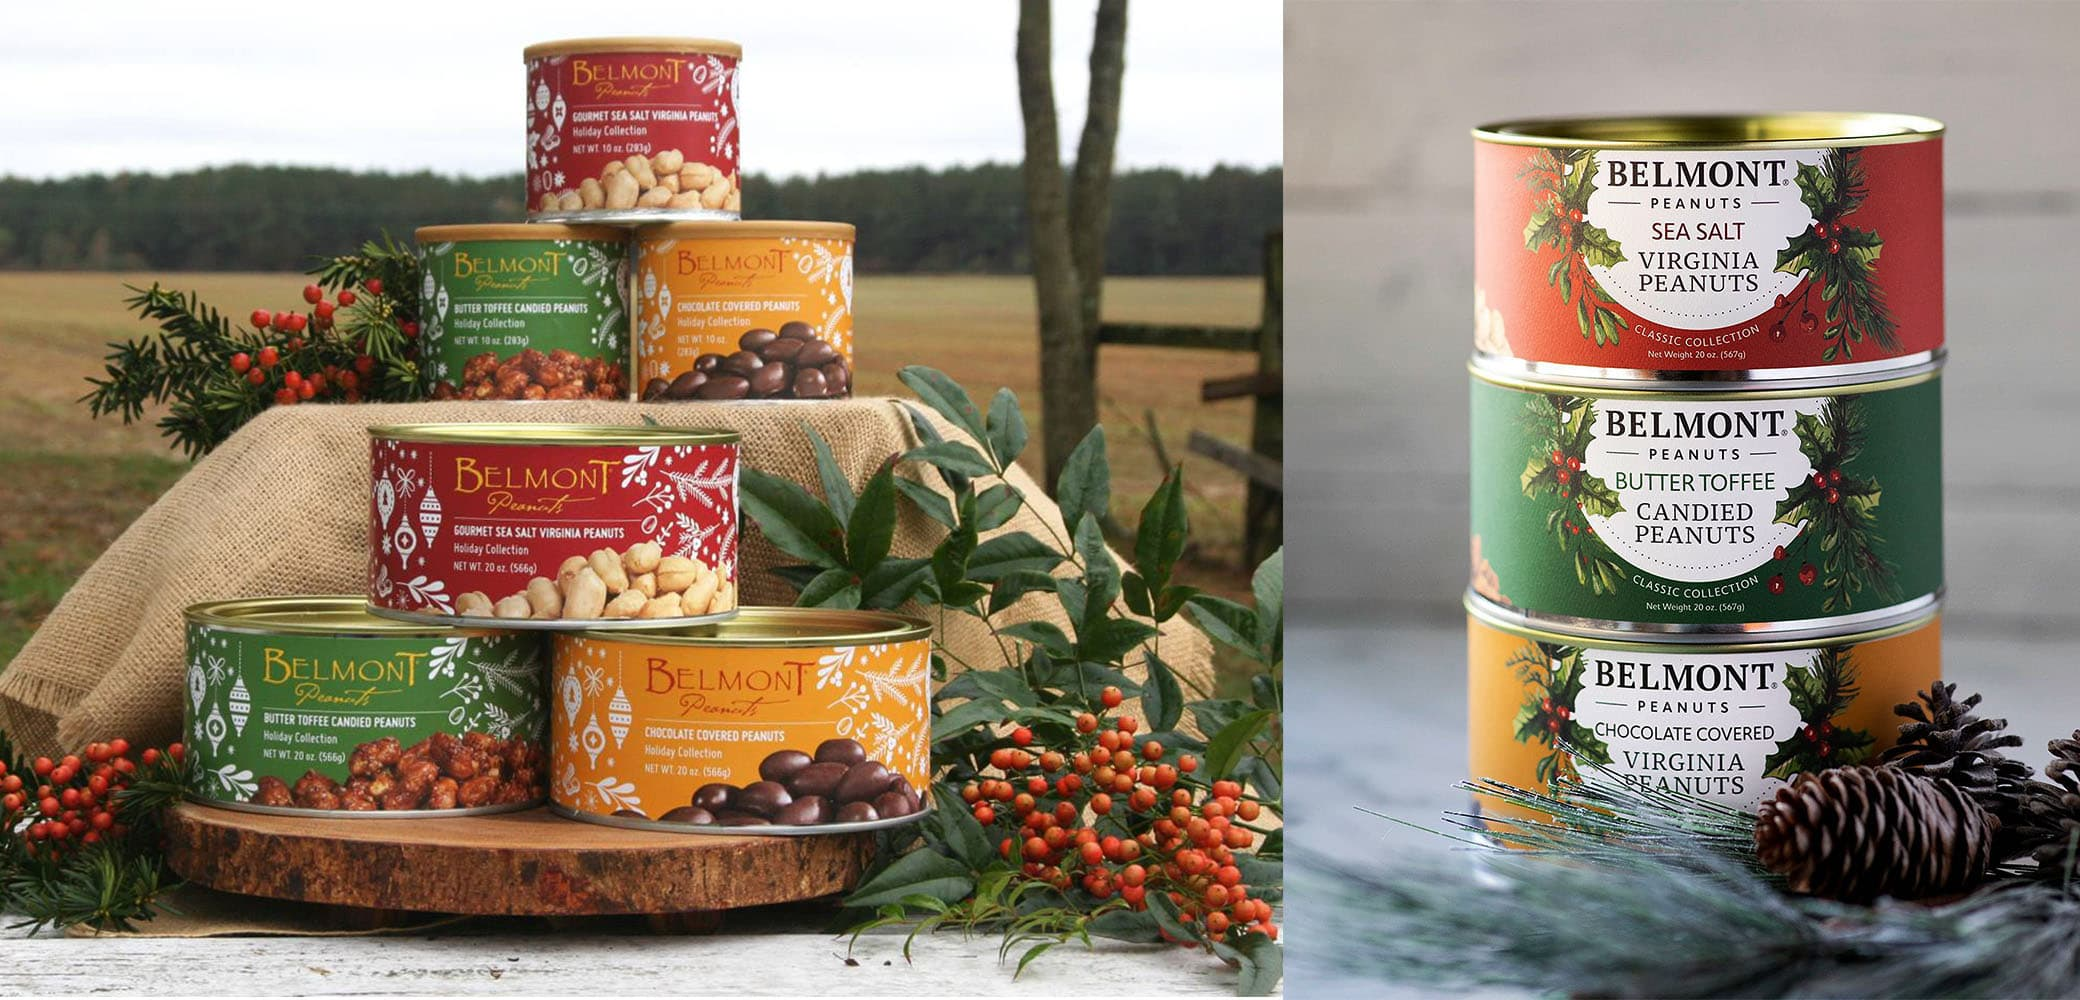 Belmont Peanuts holiday label design by Red Chalk Studios